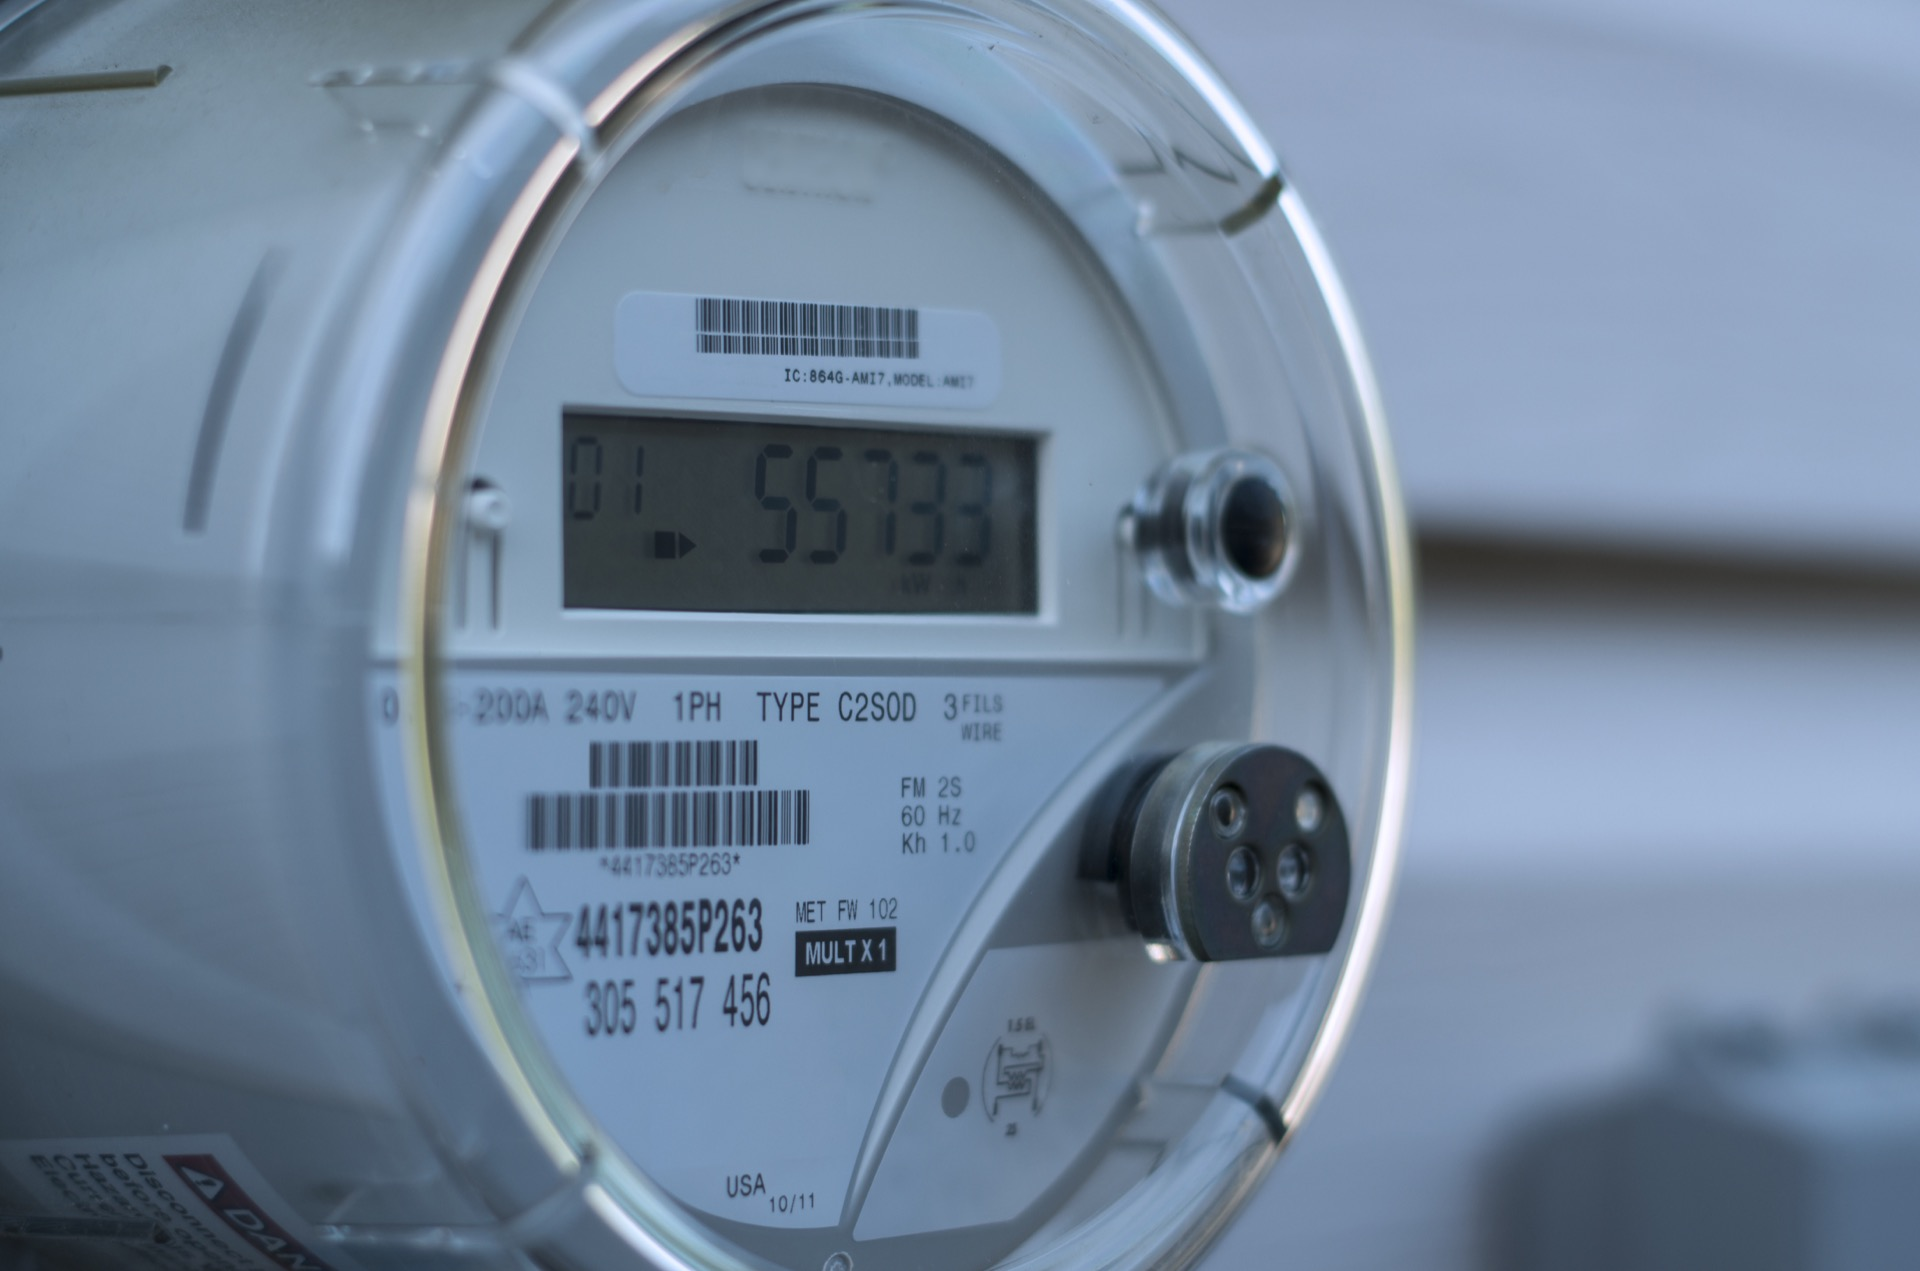 Smart electric meter showing electrical consumption